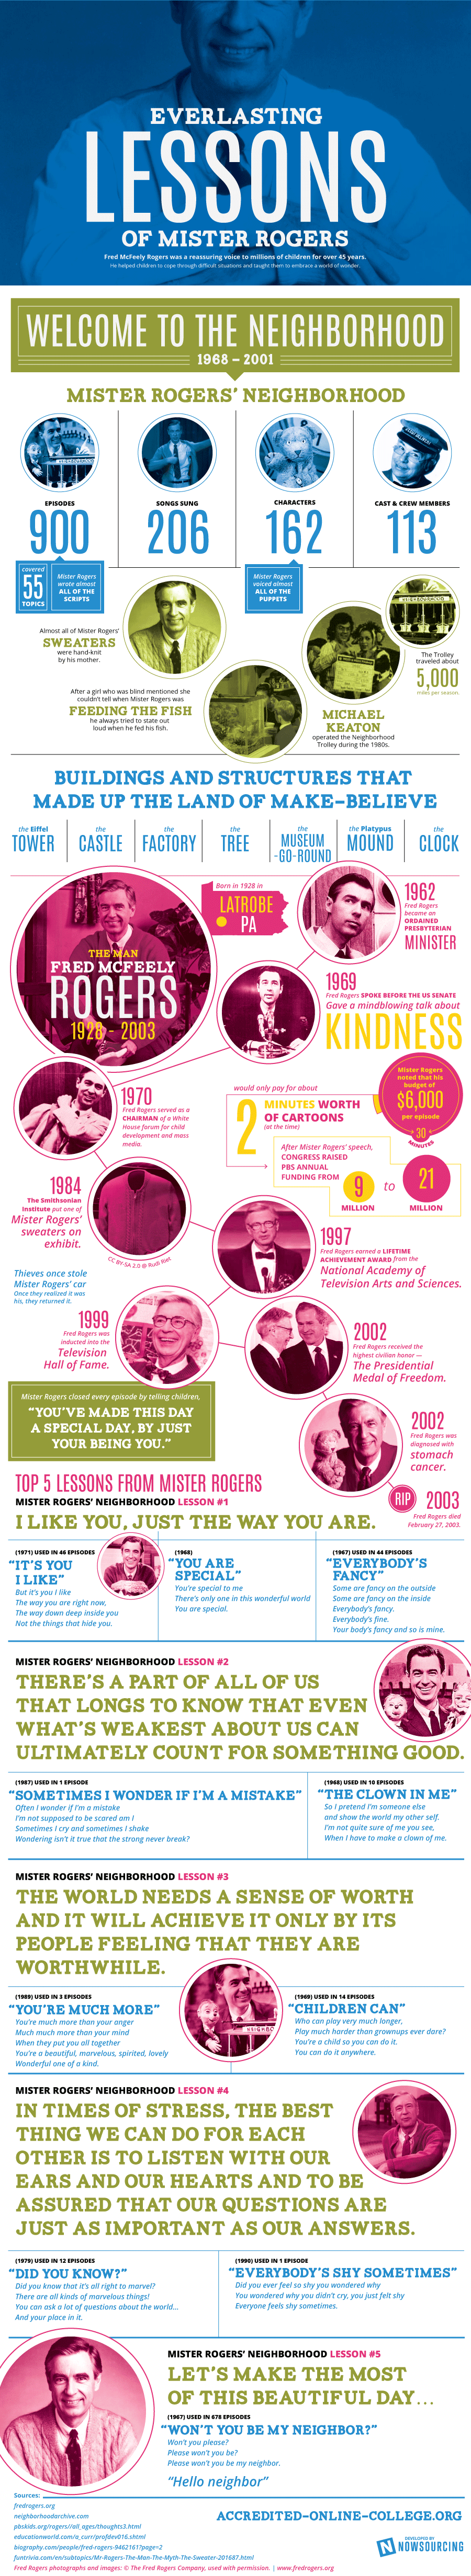 Everlasting Lessons from Mr. Rogers